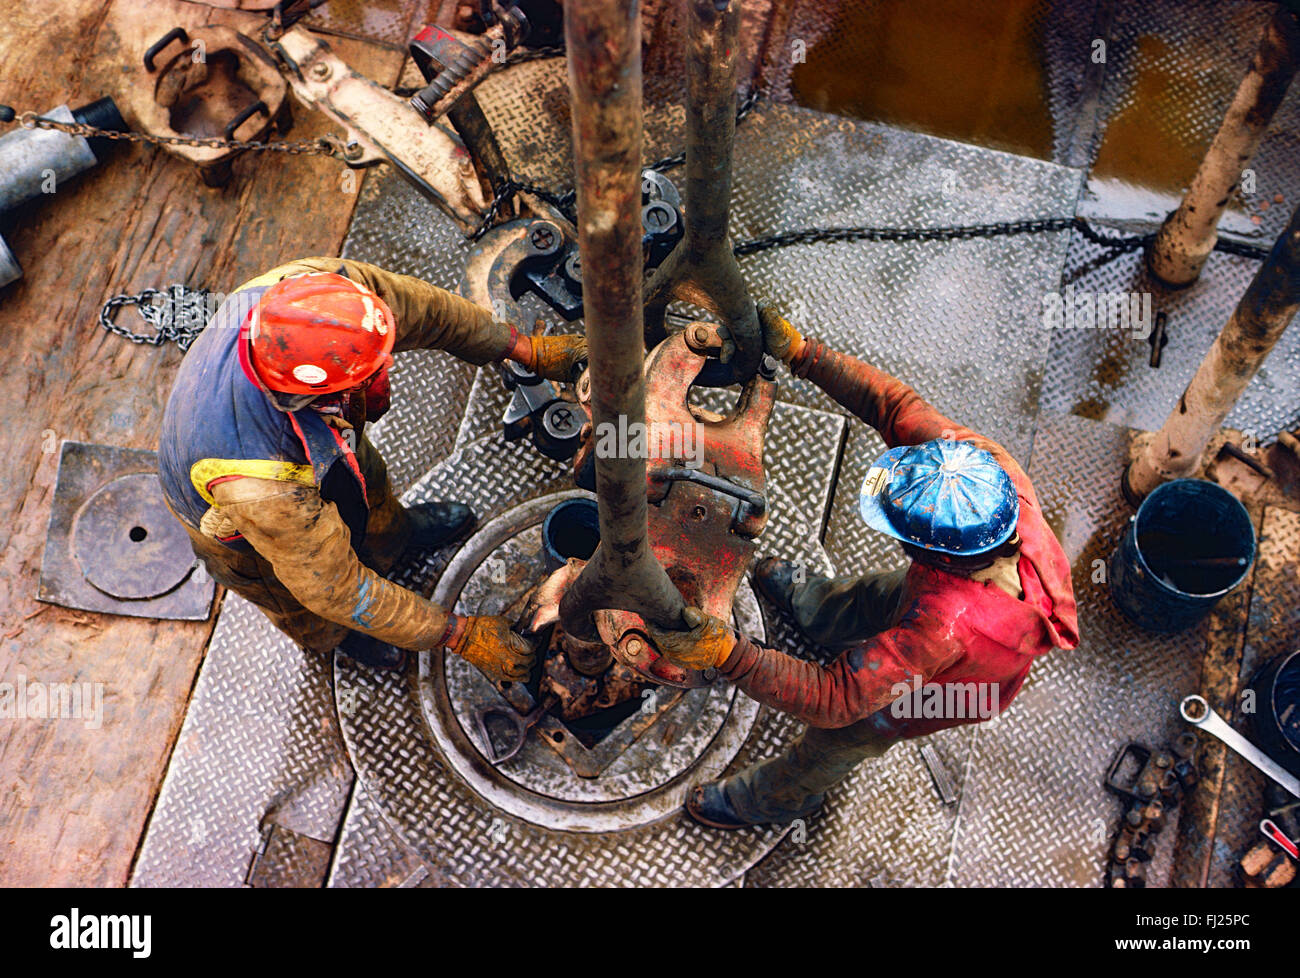 High view looking down on roughneck workers on oil rig, New Mexico, USA - Stock Image